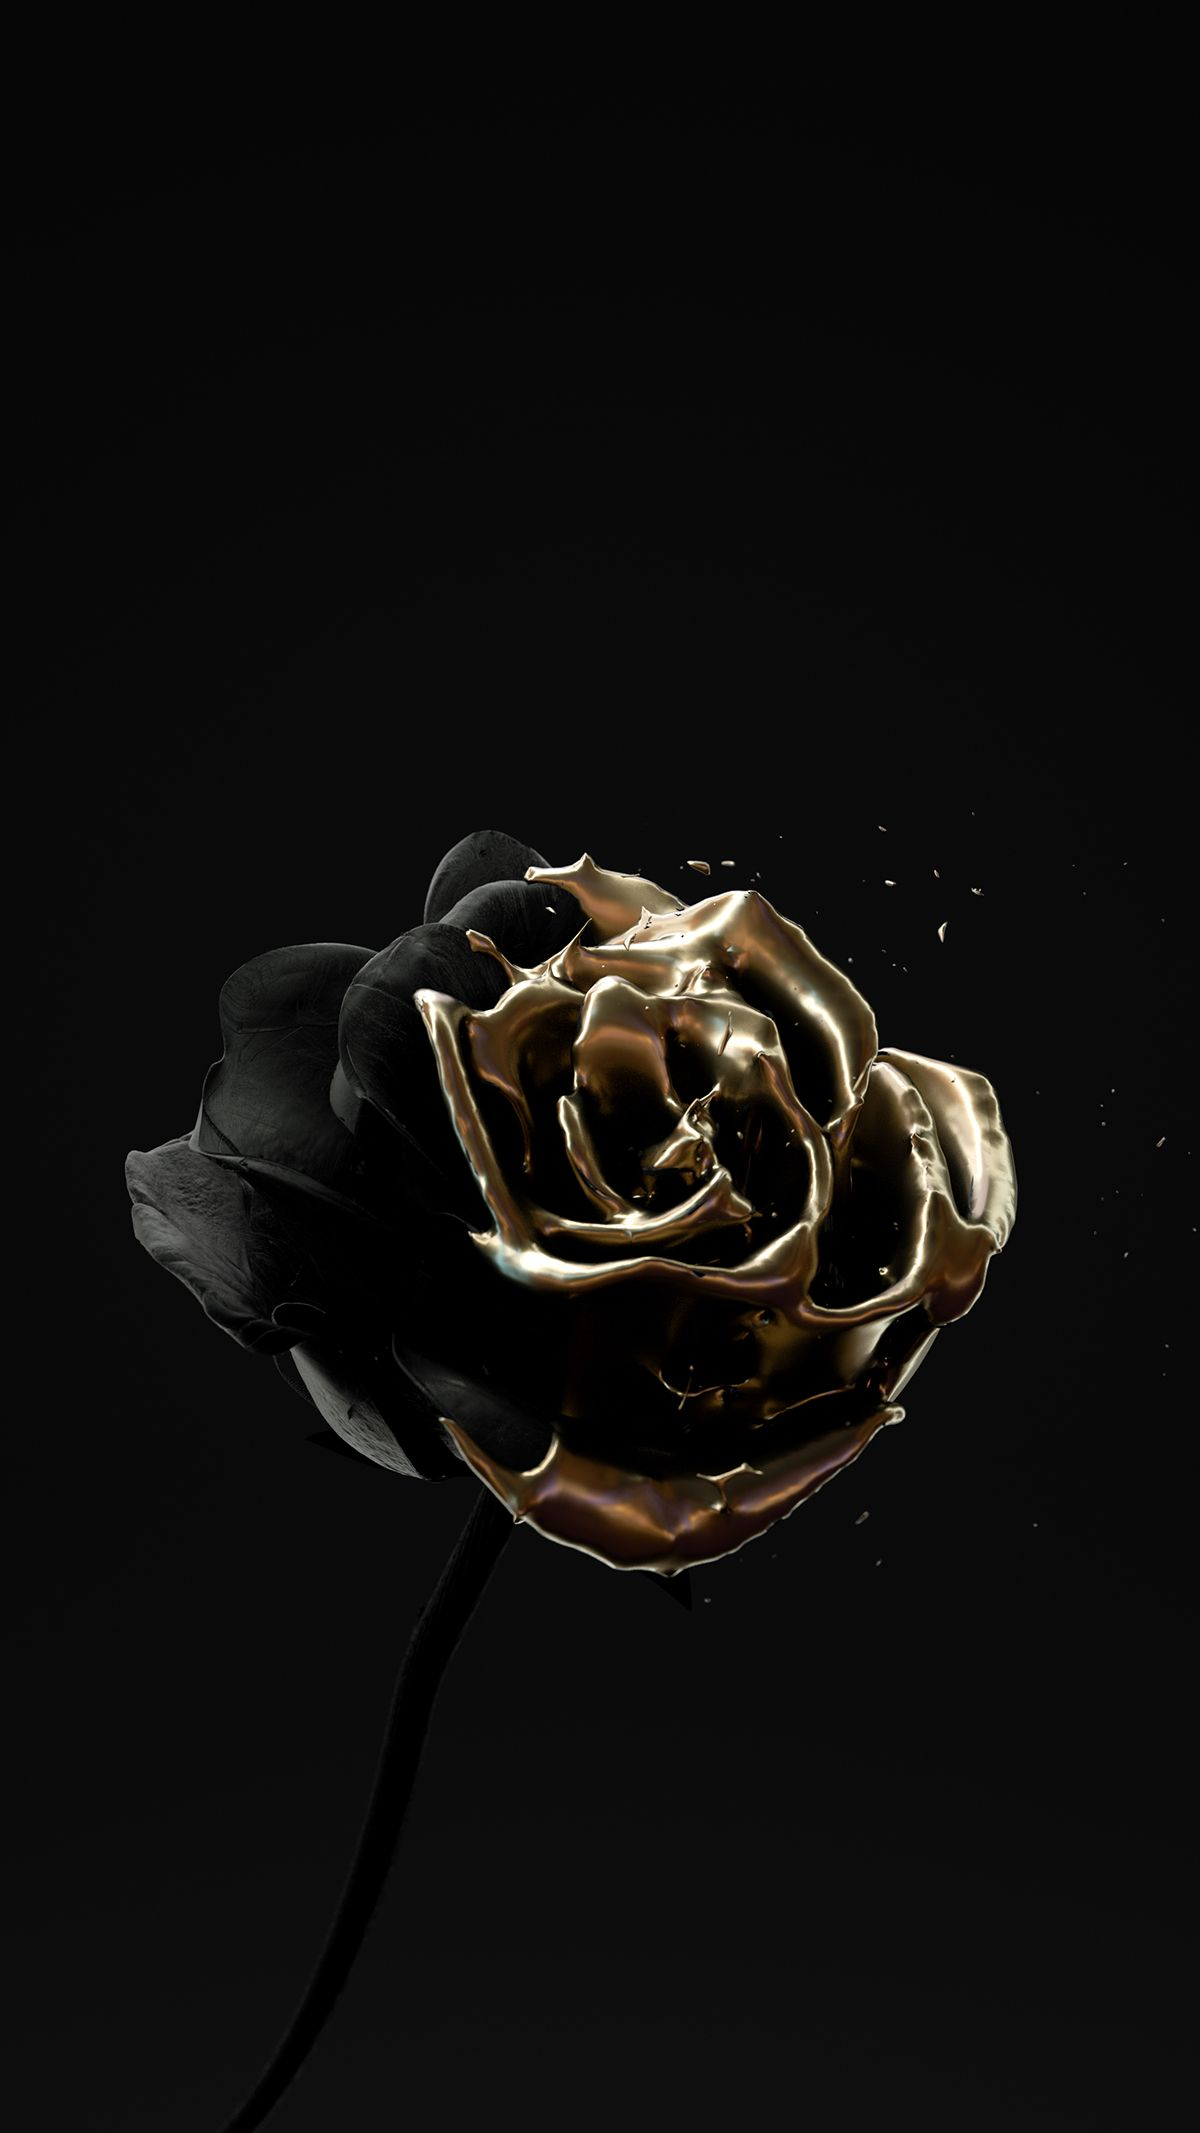 Roses Are Dead Vol 4 Black And Gold On Behance Black And Gold Aesthetic Gold Aesthetic Gold And Black Wallpaper